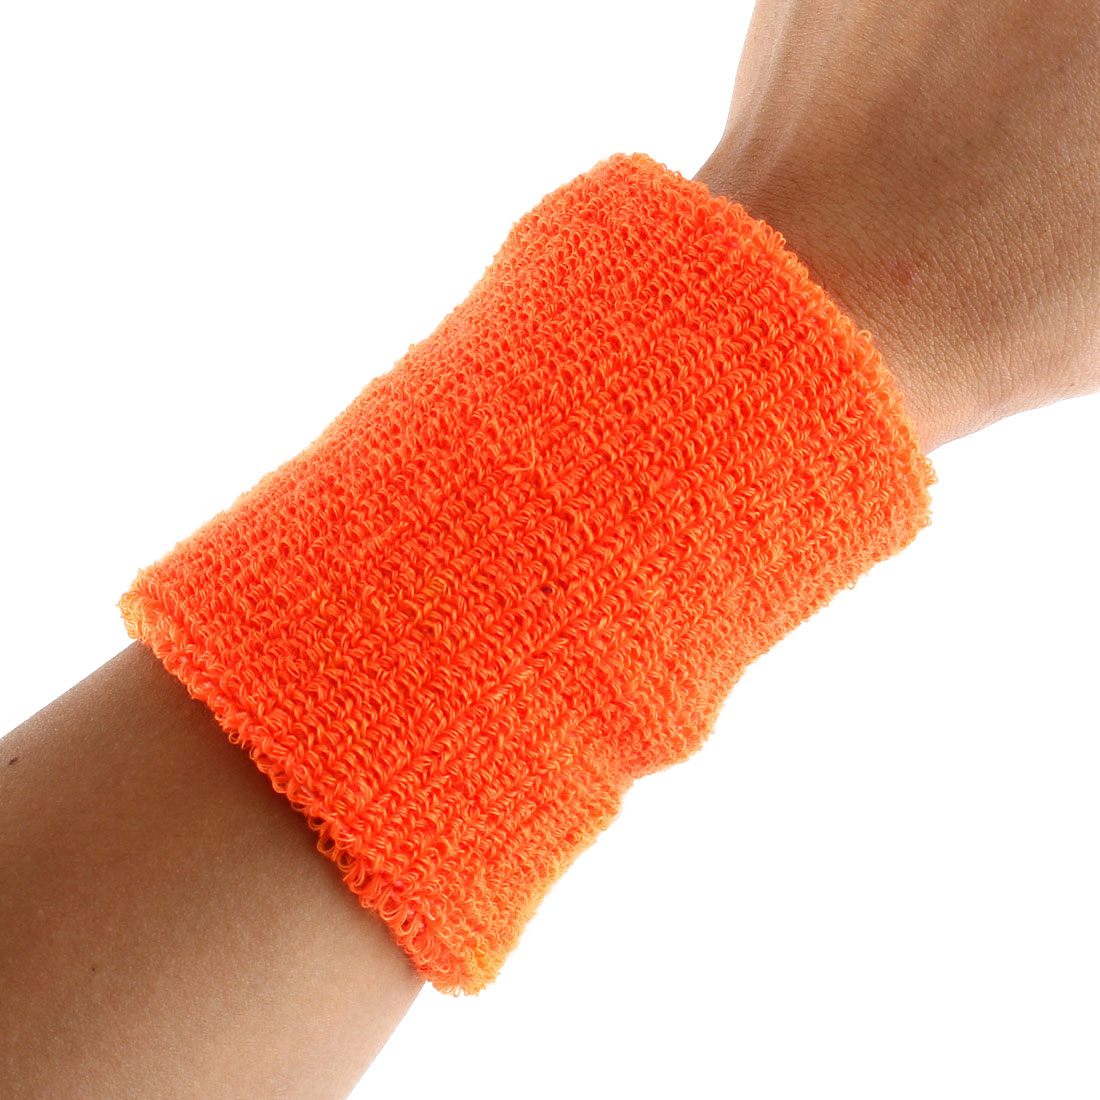 Exercises Gym Running Elastic Breathable Hand Protector Bandage Sweatband Wristband Sport Wrist Orange 2pcs